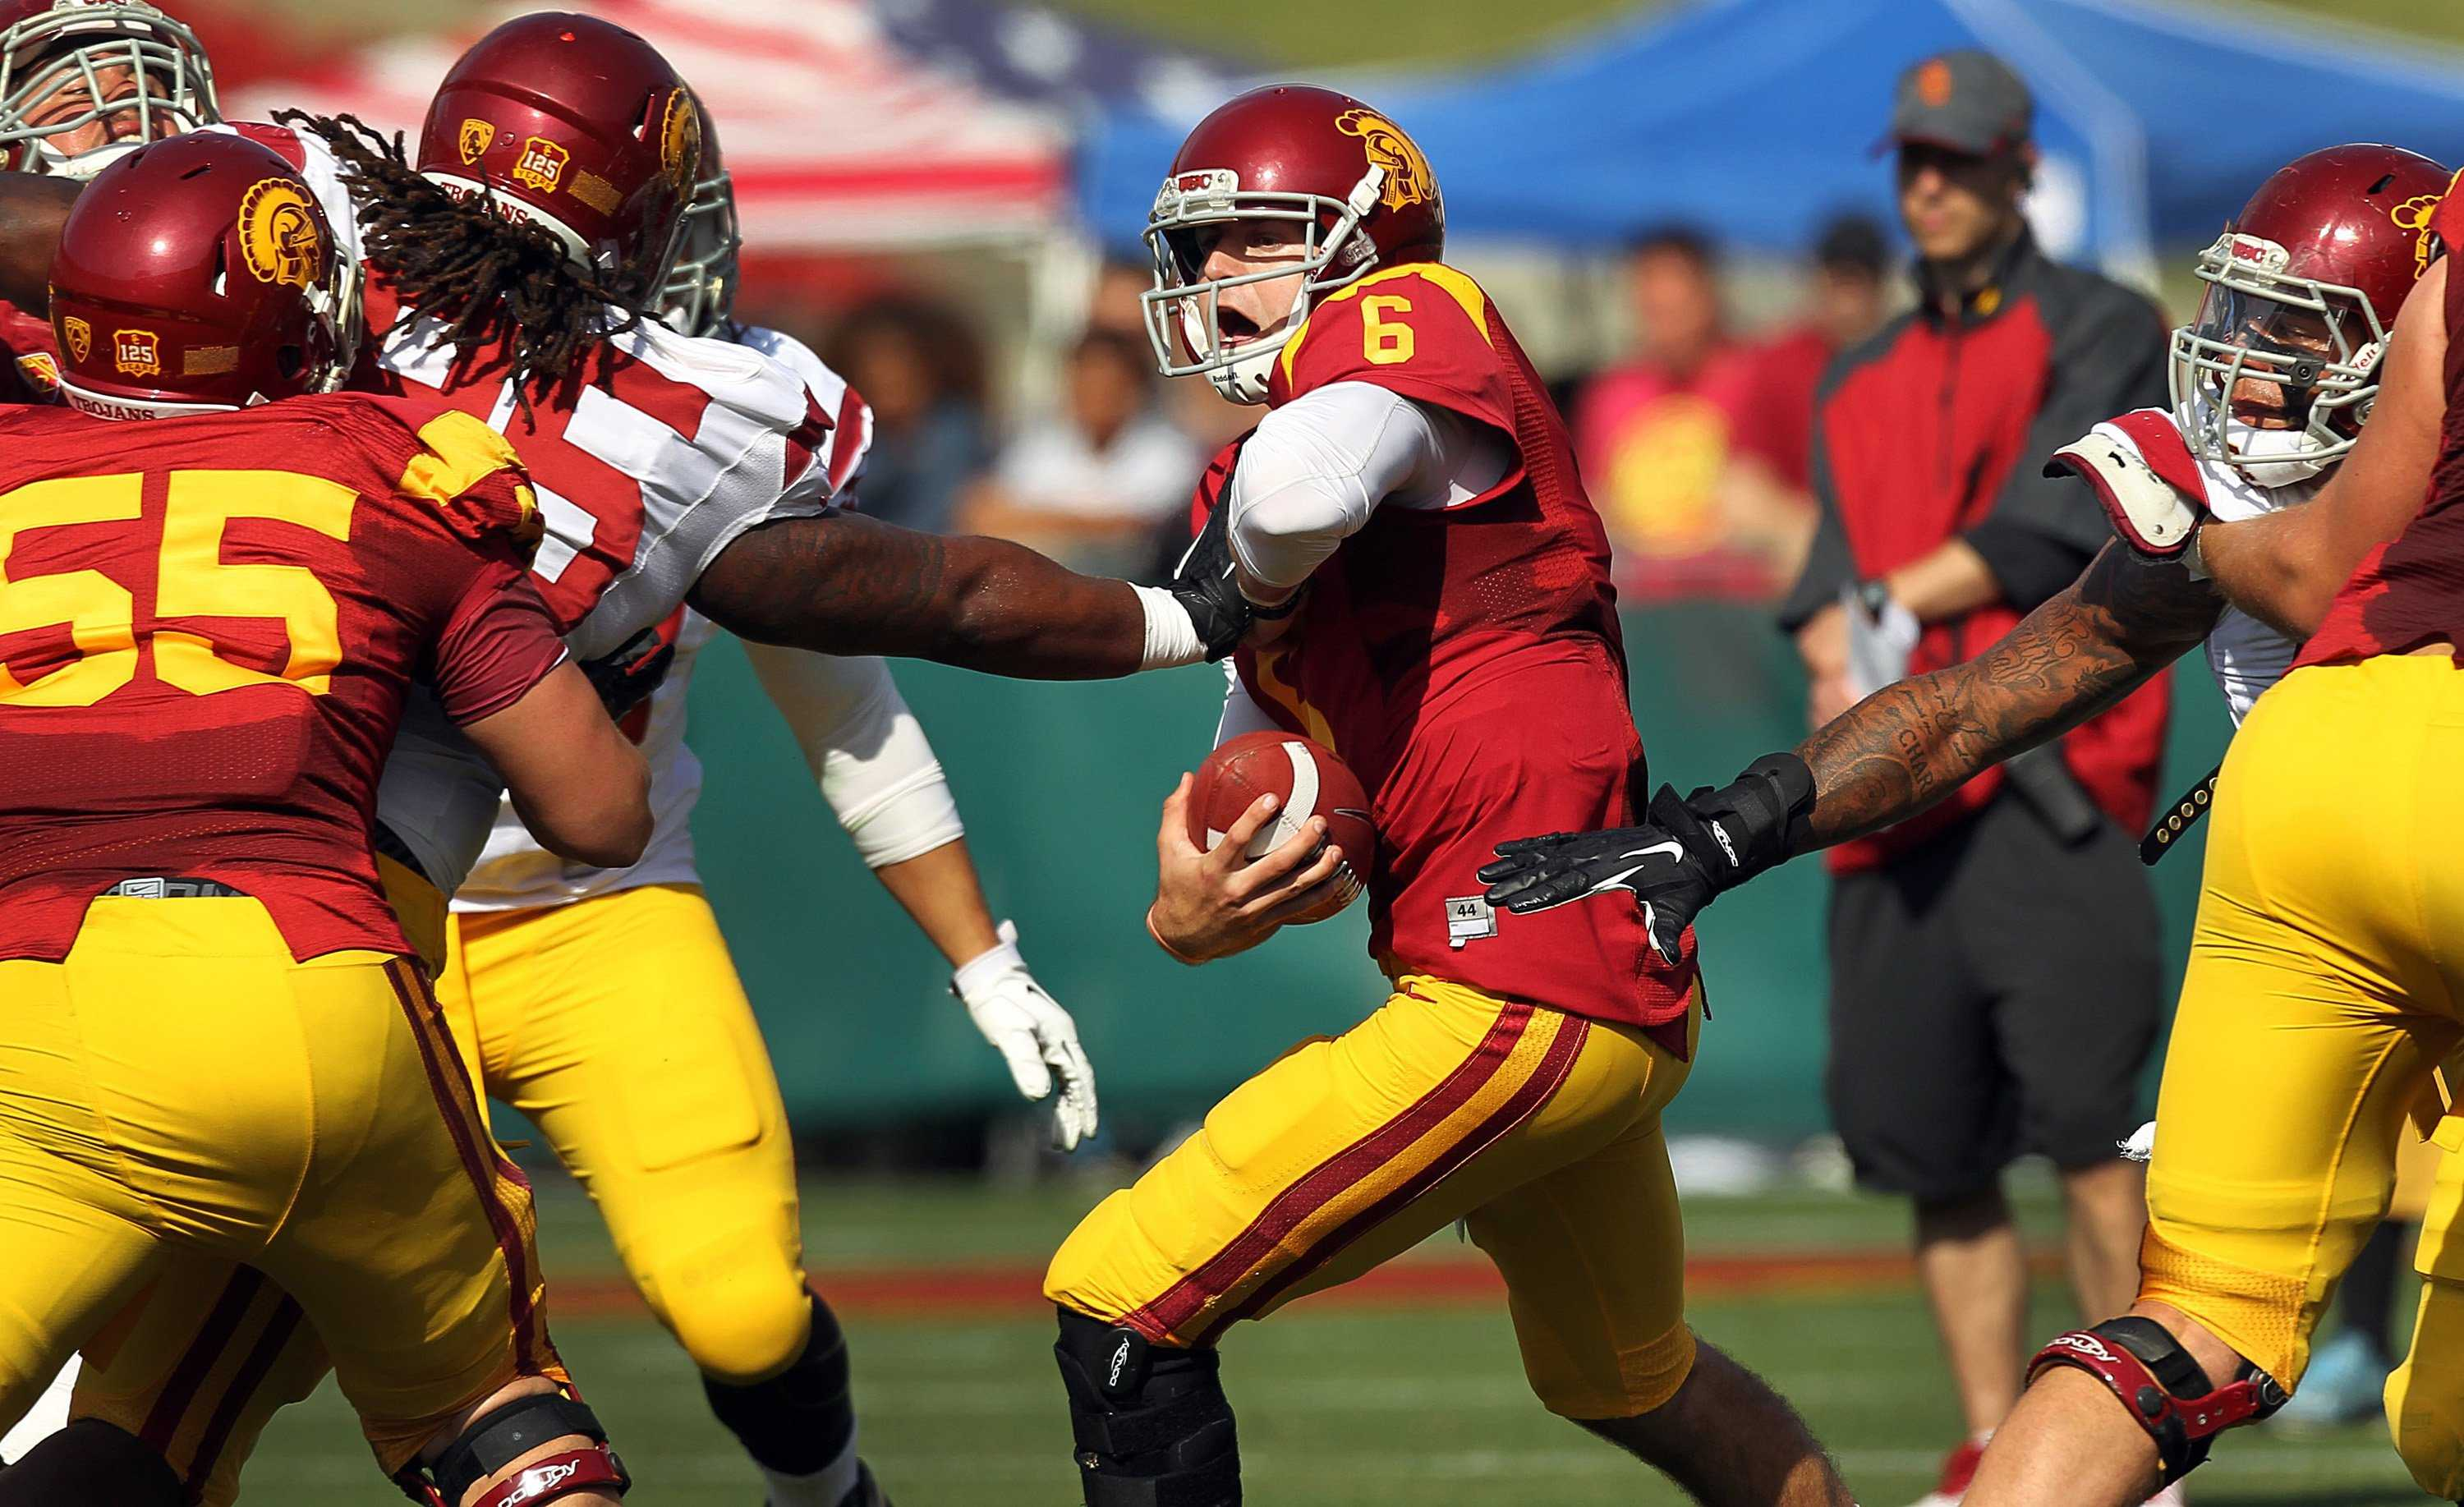 USC Cody Kessler needs to the focal point of head coach Steve Sarkisian's offense as the Trojans continue to build on last season's success.